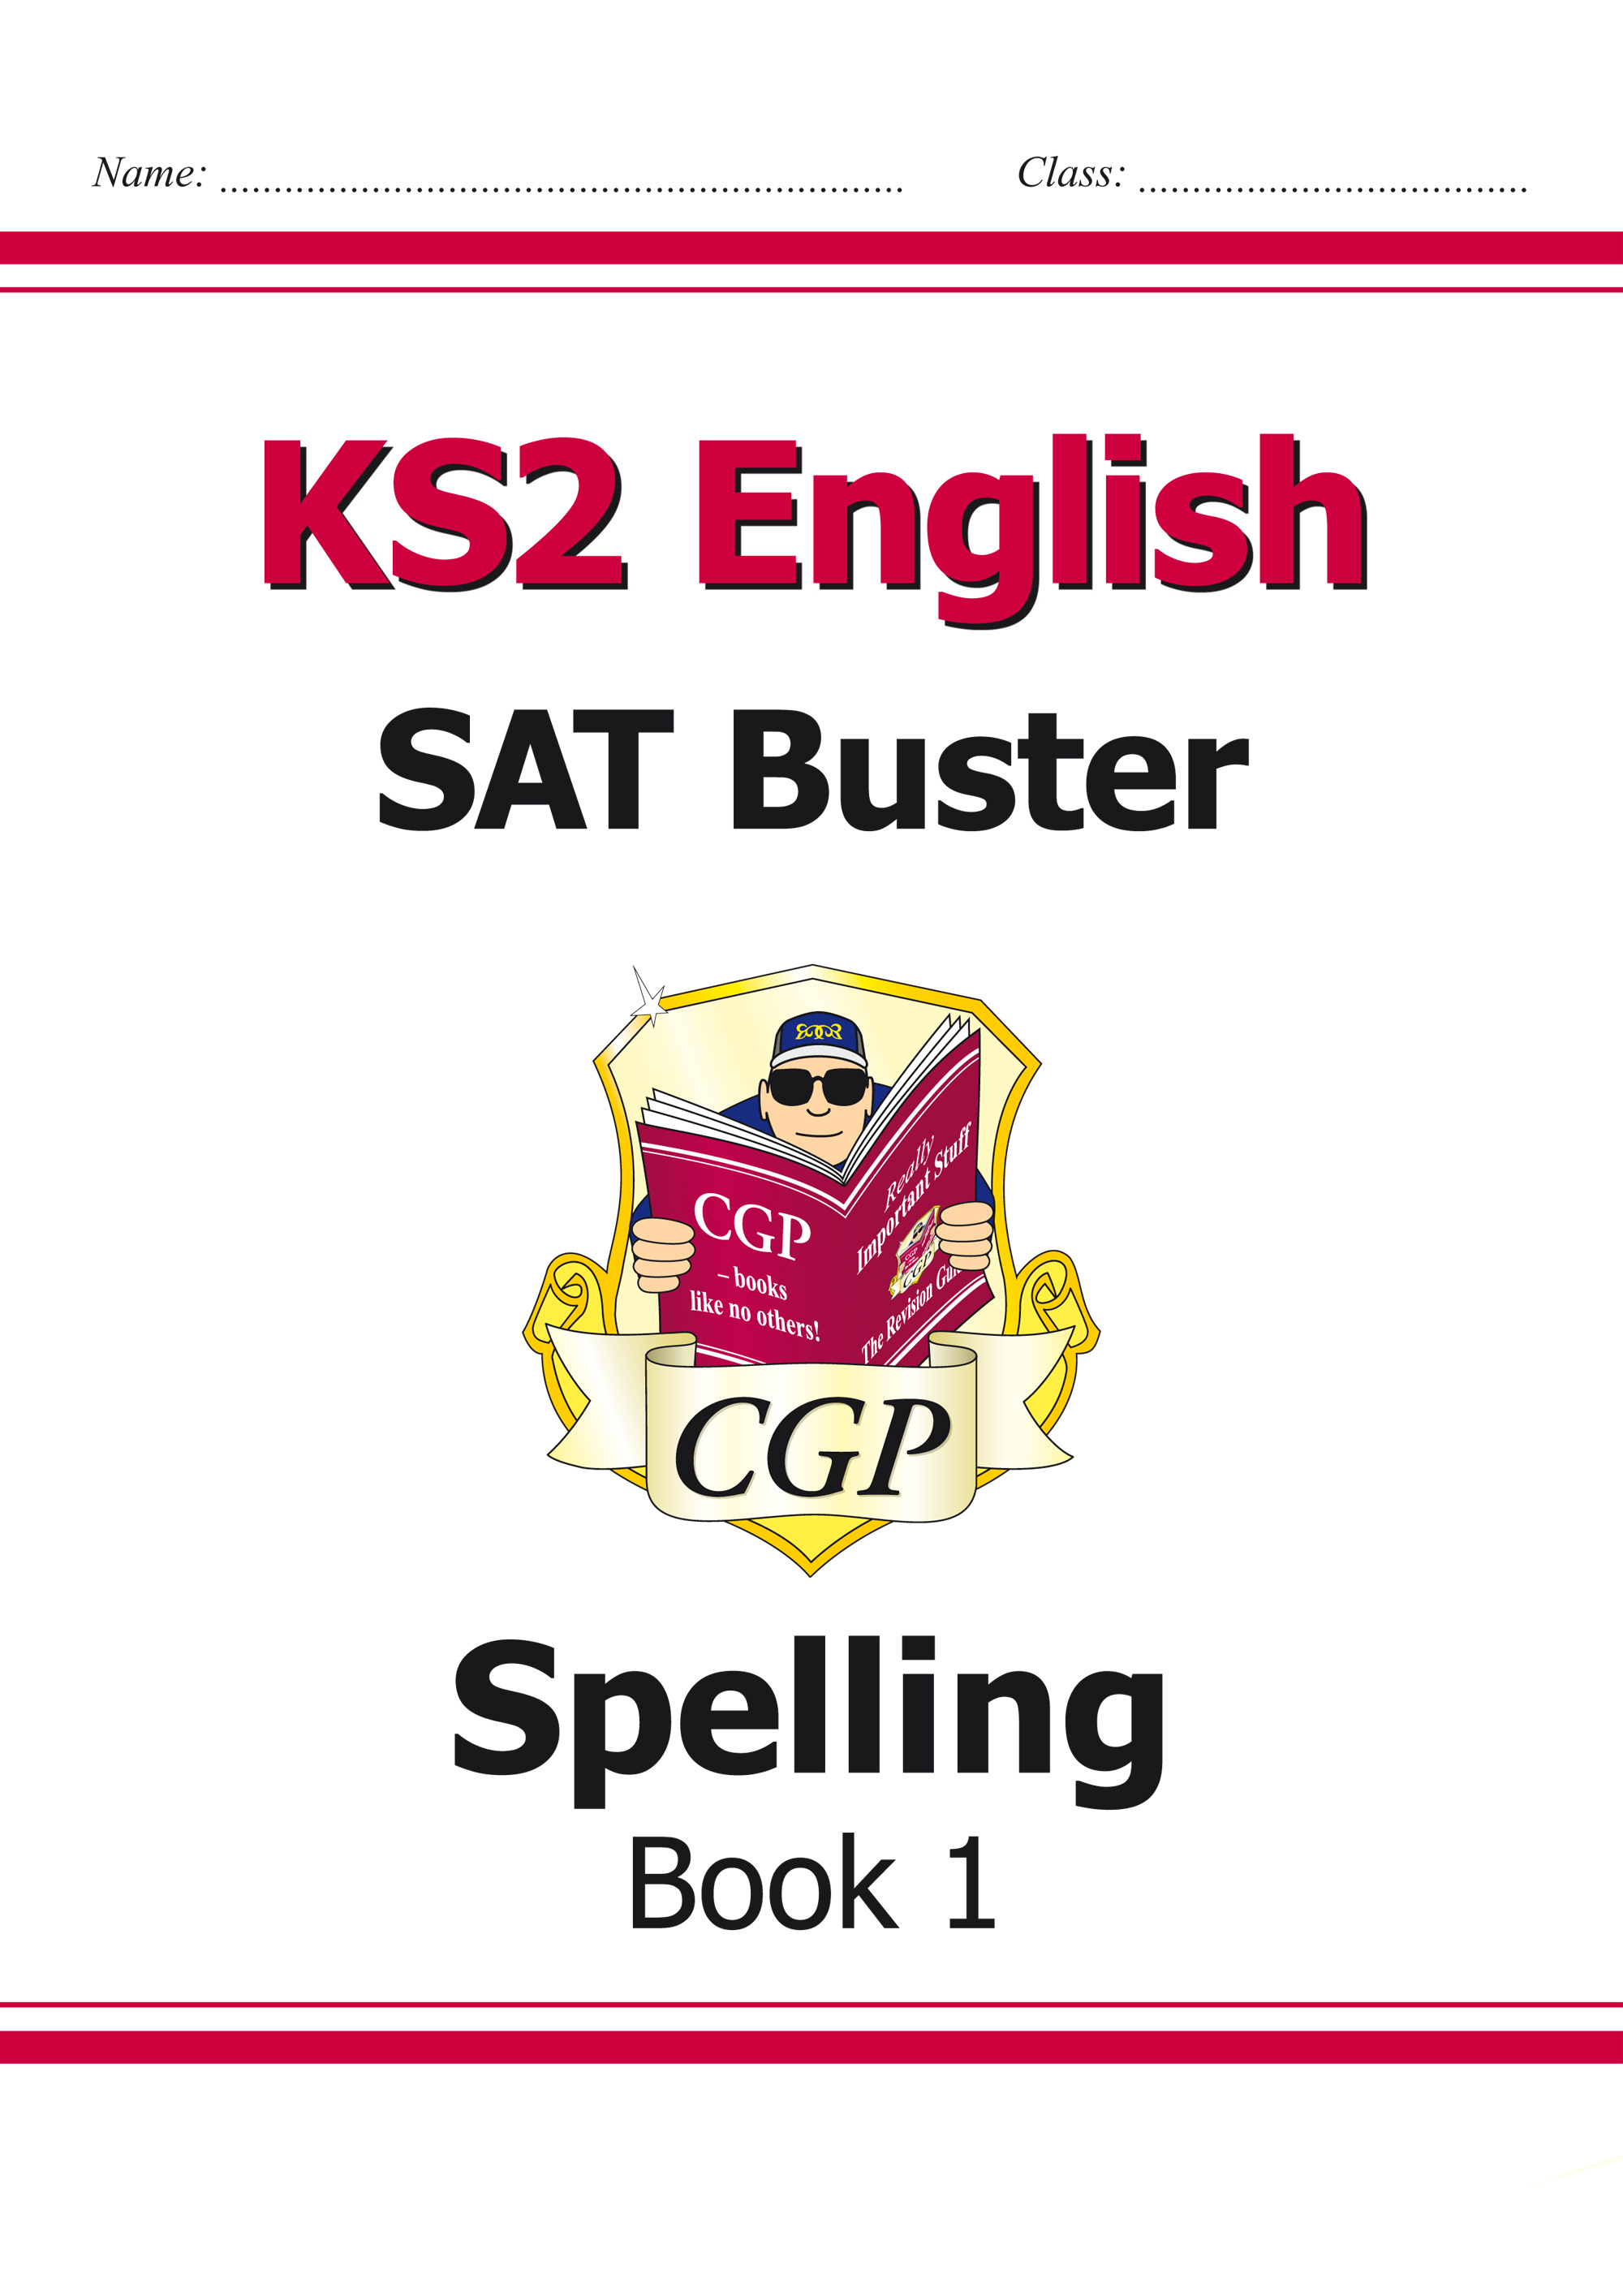 E6S23 - KS2 English SAT Buster: Spelling Book 1 (for the 2020 tests)